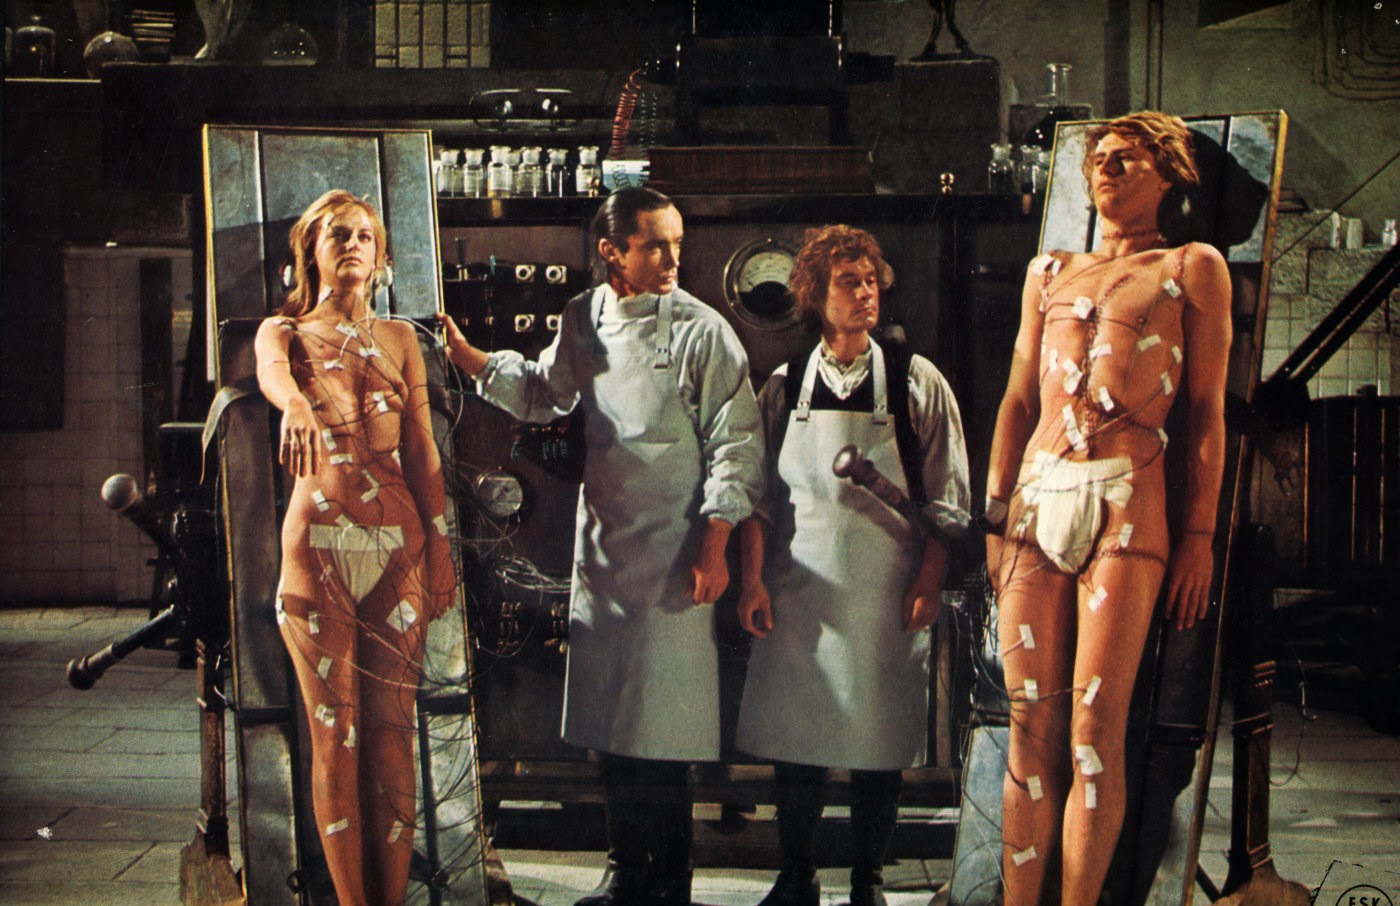 Baron Frankenstein (Udo Kier) with assistant Otto (Arno Juerging) flanked by his female (Dalila Di Lazzaro) and male (Srdjan Zelenovic) creations in Andy Warhol's Frankenstein (1973)